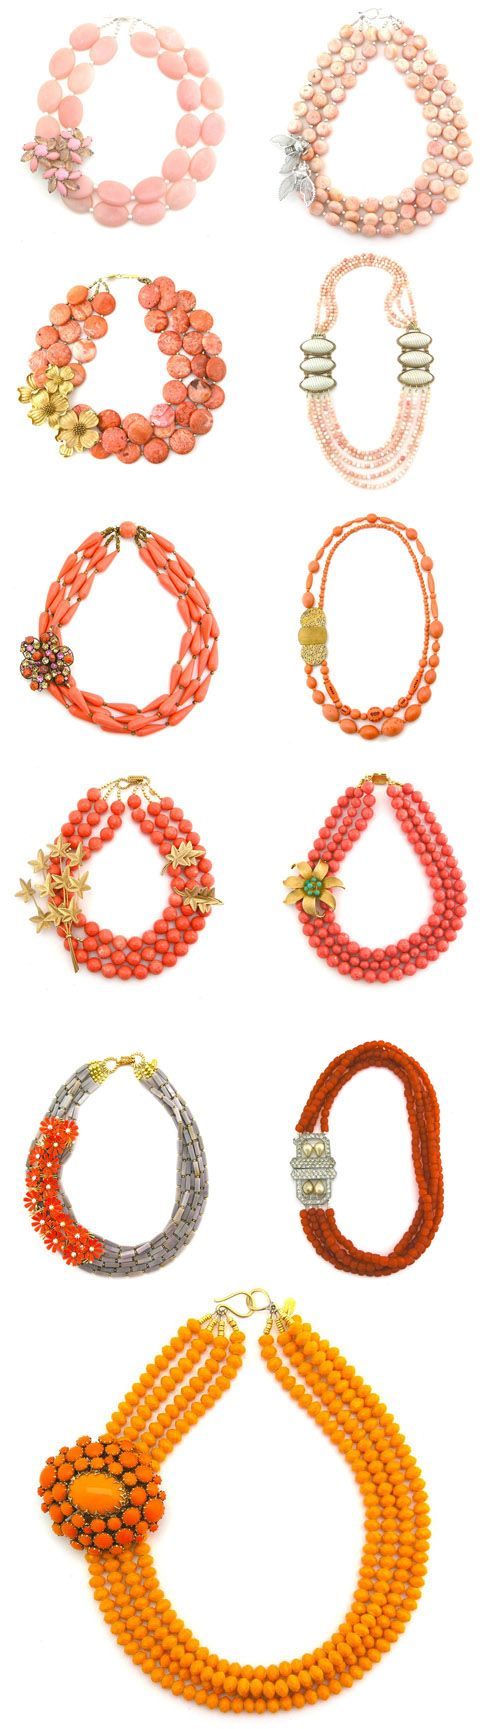 Coral, pink, peach and orange necklaces from the Elva Fields spring 2012 collection! Great birdesmaids gifts!